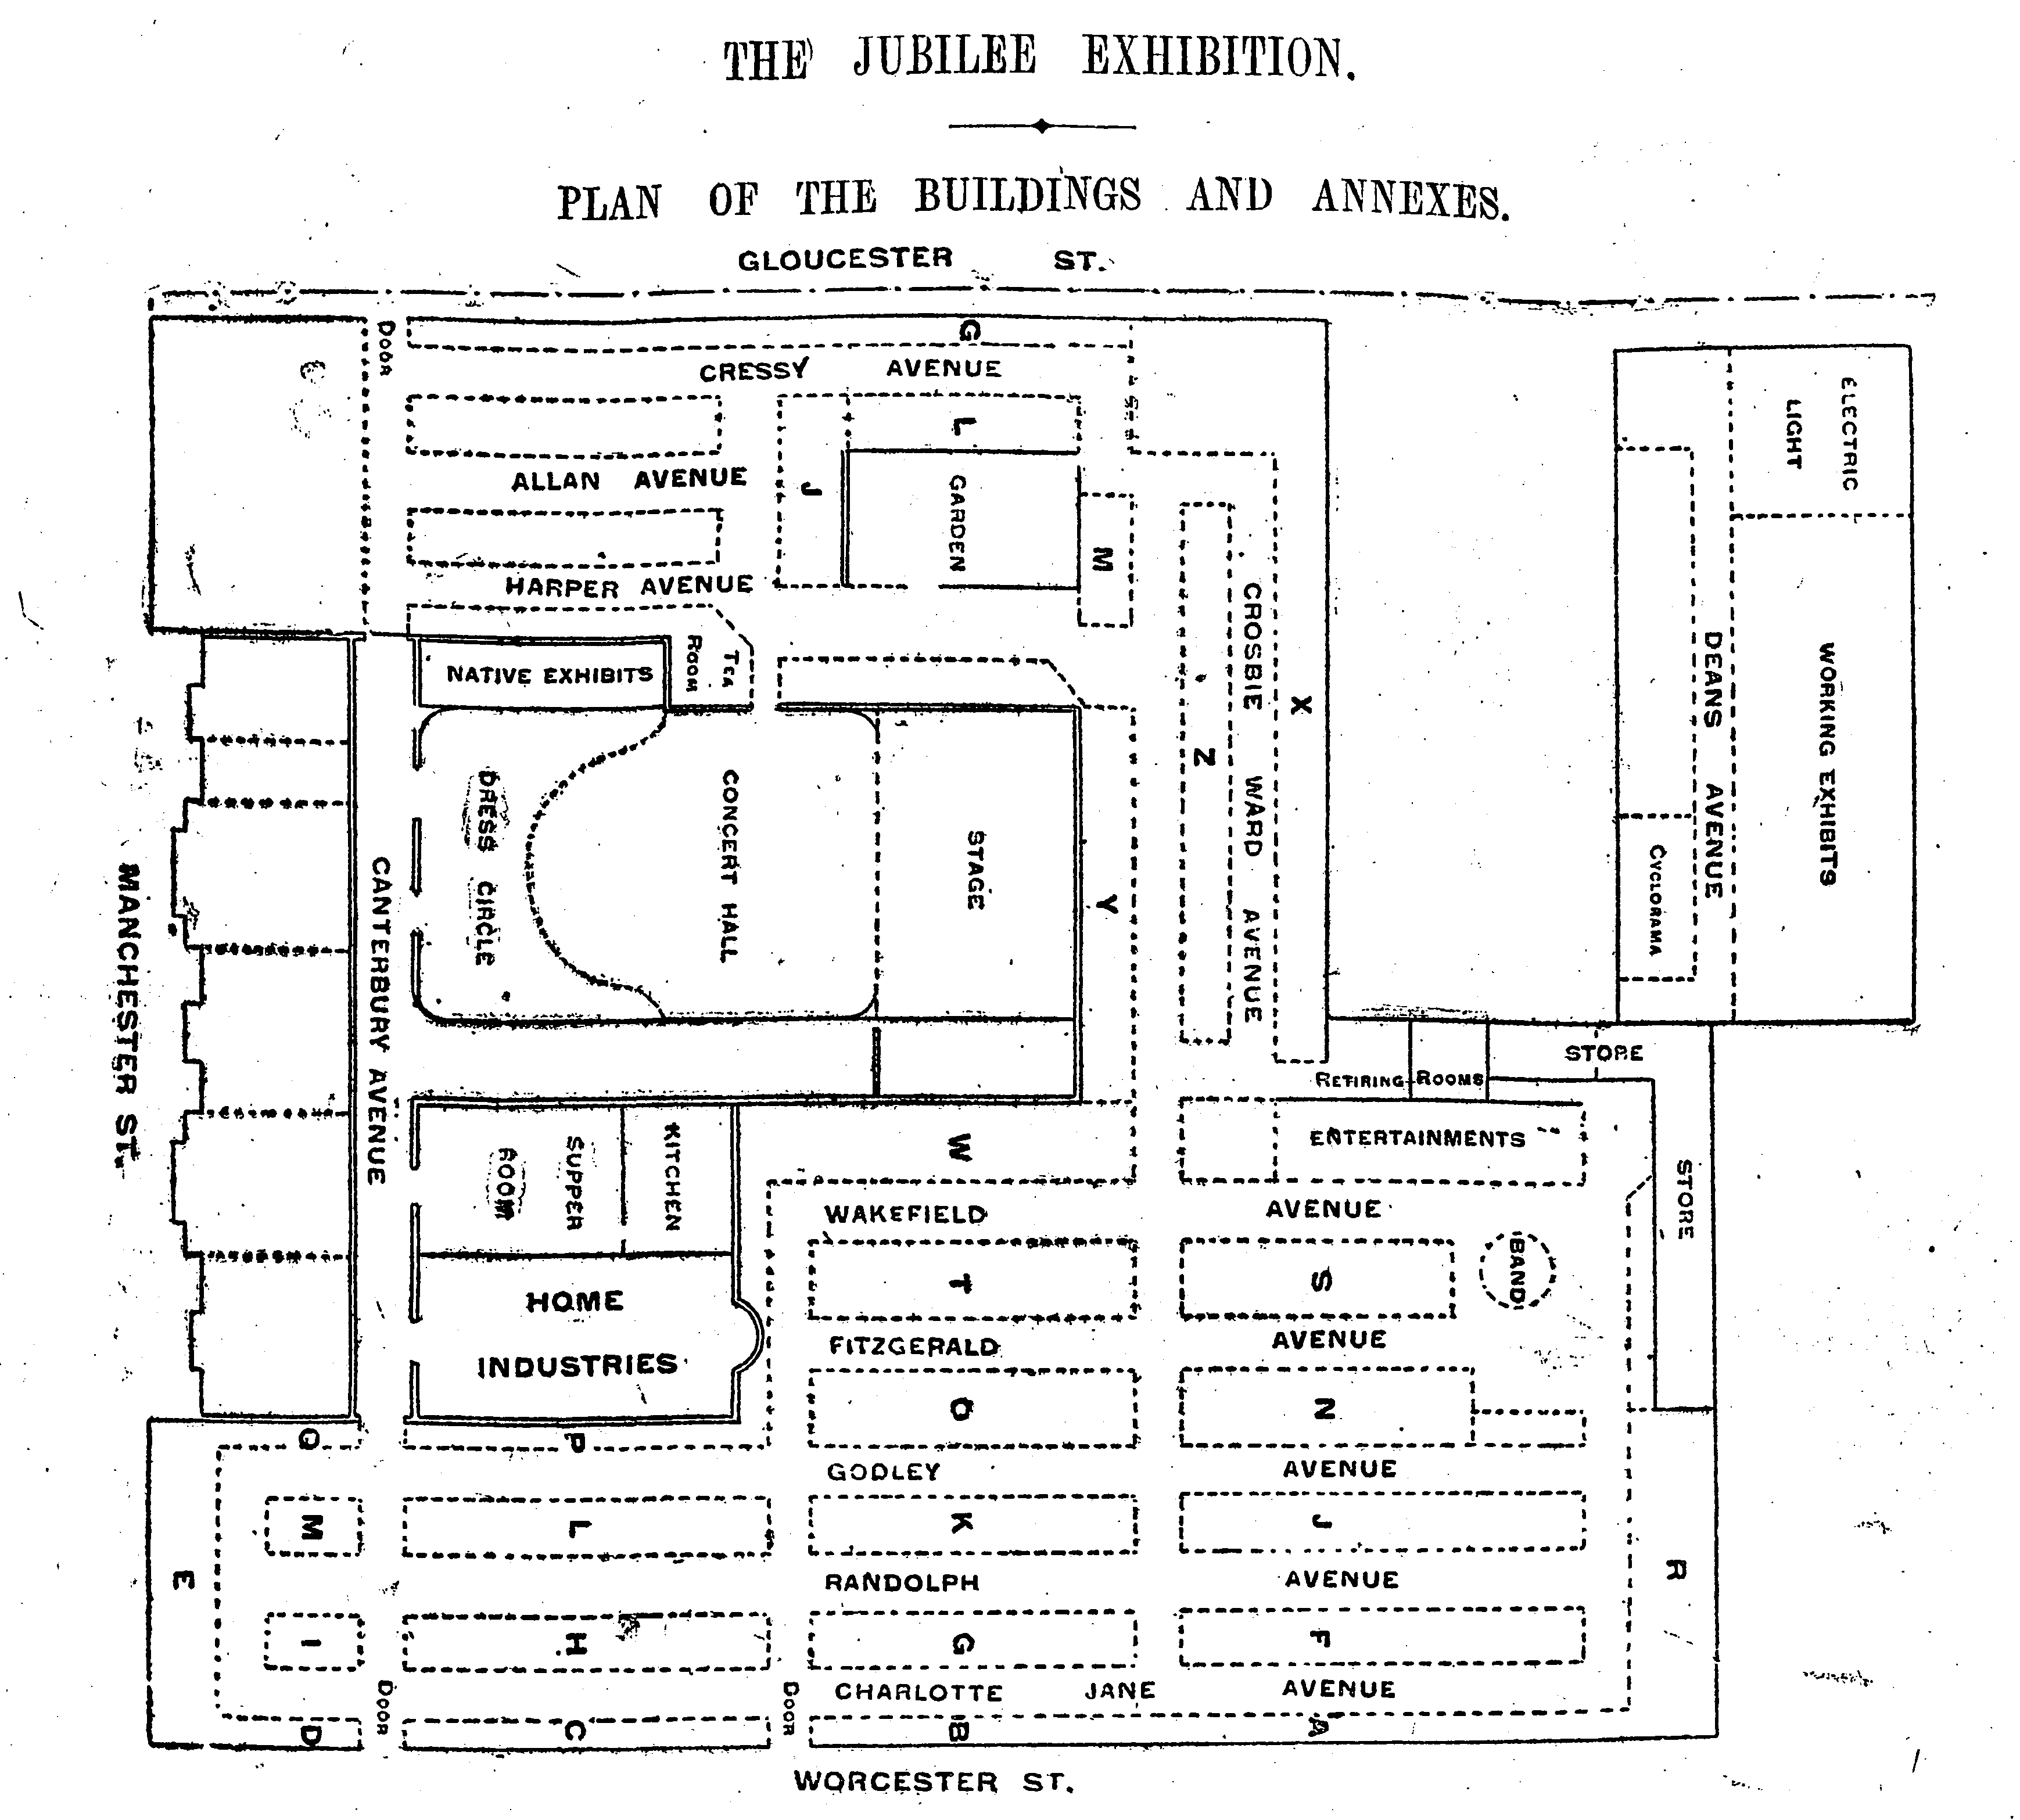 Exhibition Stand Floor Plans : File jubilee exhibition plan g wikimedia commons